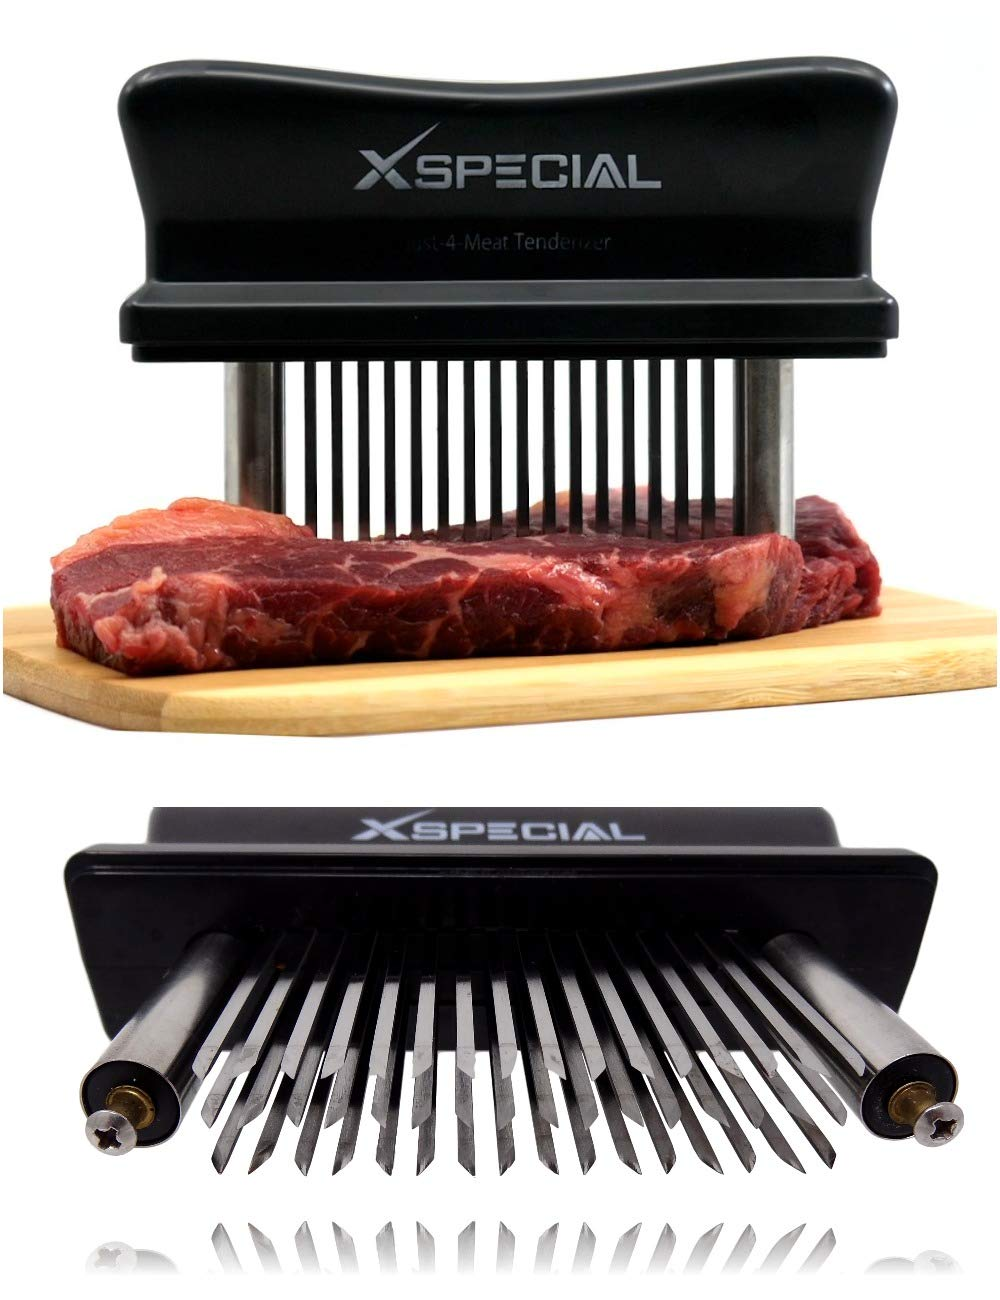 XSpecial Meat Tenderizer Tool - TRY IT NOW,Taste The Tenderness or REFUNDED ? Kitchen Gadget Tenderizers 48 Blades Stainless Steel Needle = Best For Tenderizing,BBQ,Marinade & Flavor Maximizer